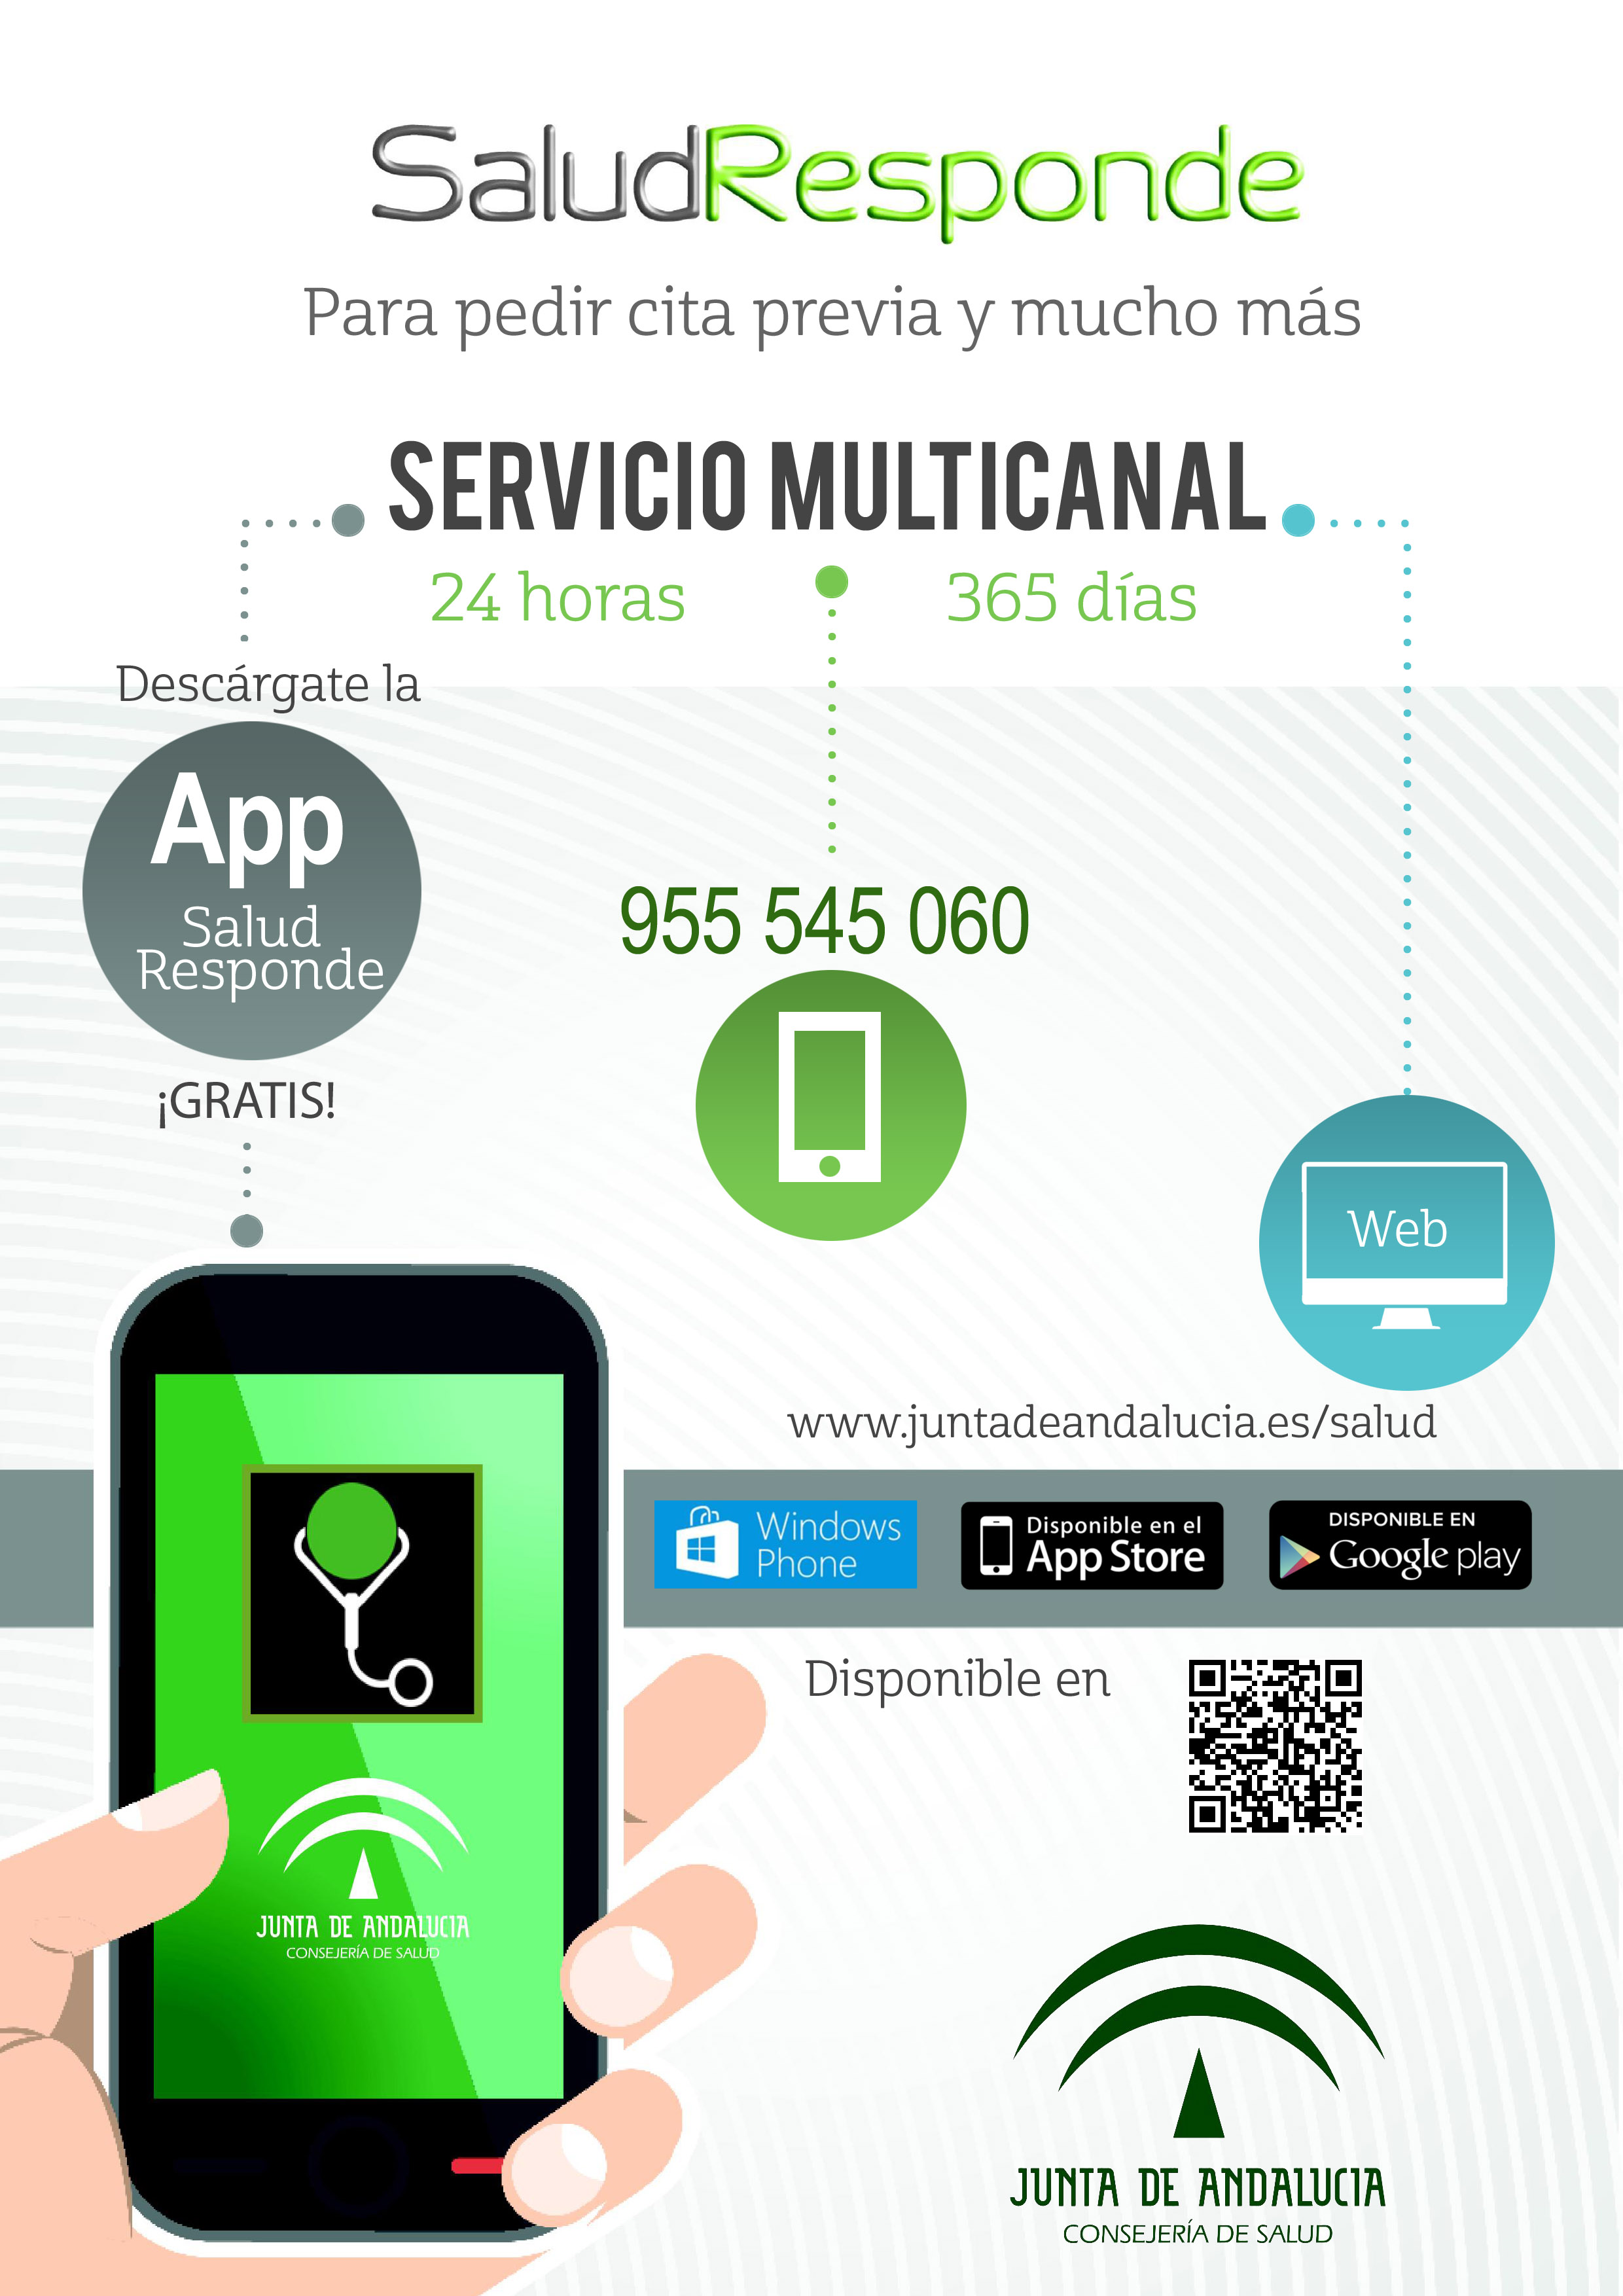 http://www.epes.es/wp-content/uploads/Cartel-Nuevo-Acceso-Telefono-Salud-Responde.jpg